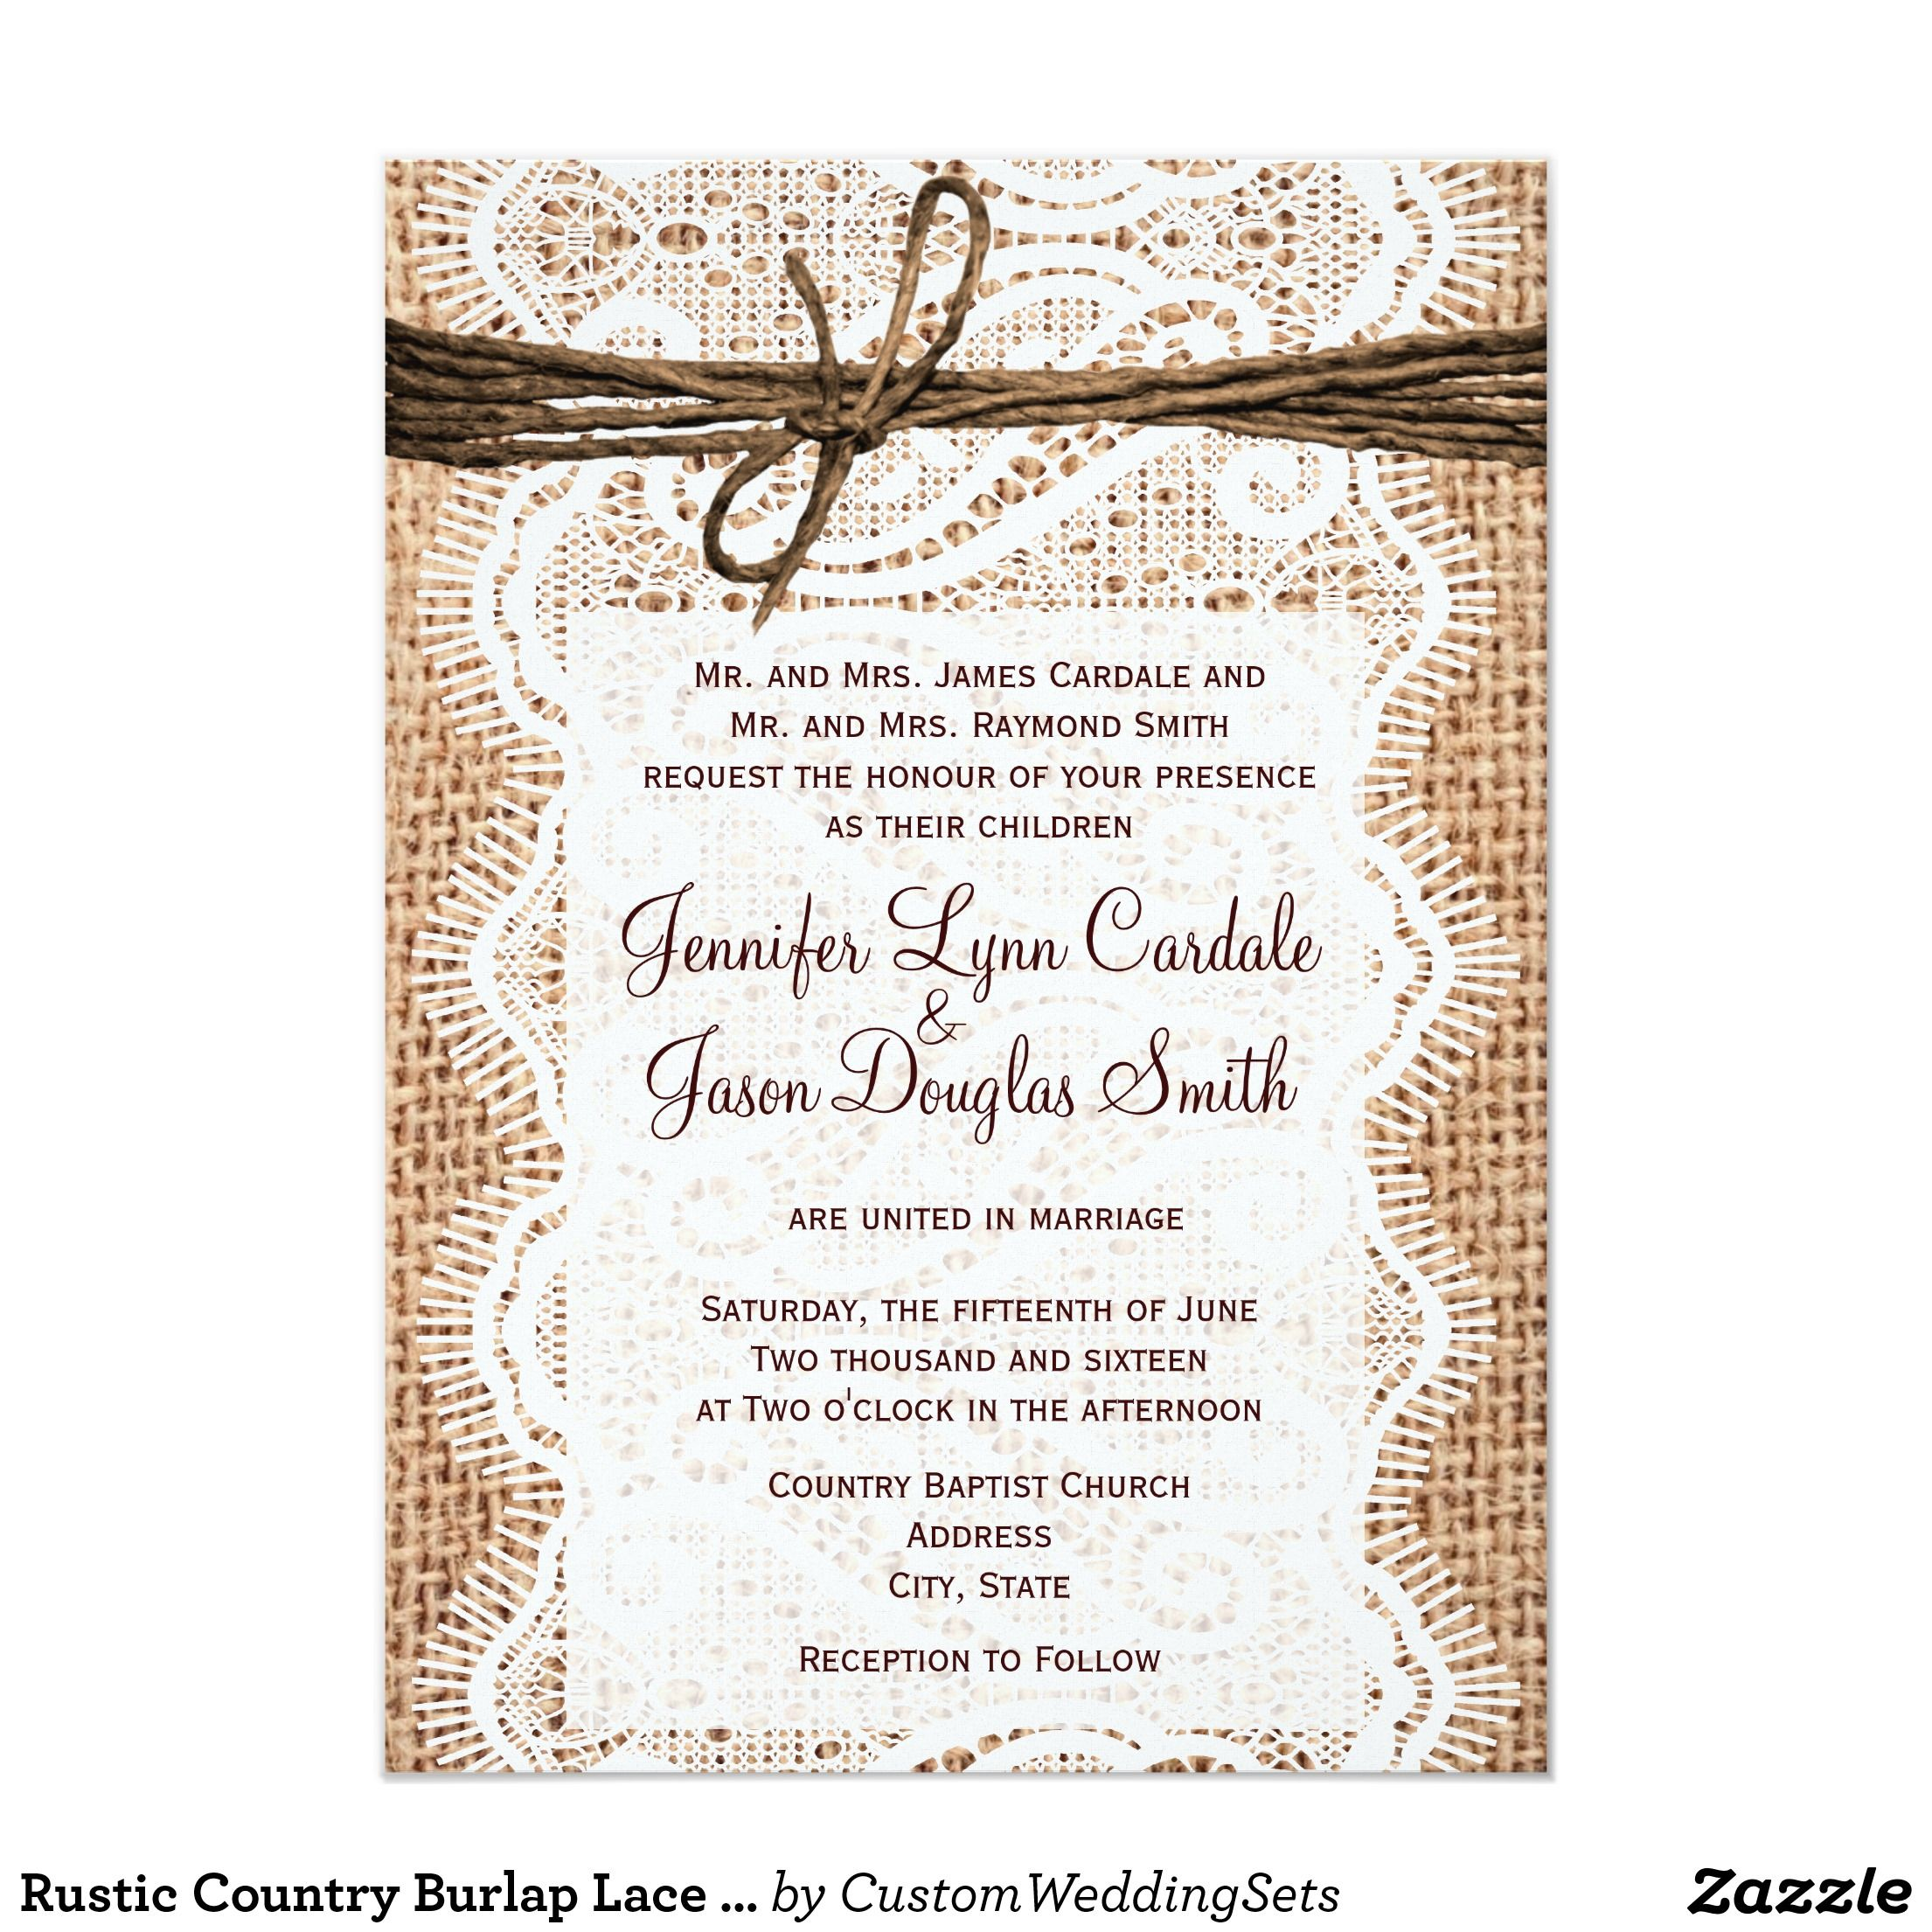 Rustic Country Burlap Lace Twine Wedding Invites | Burlap lace ...